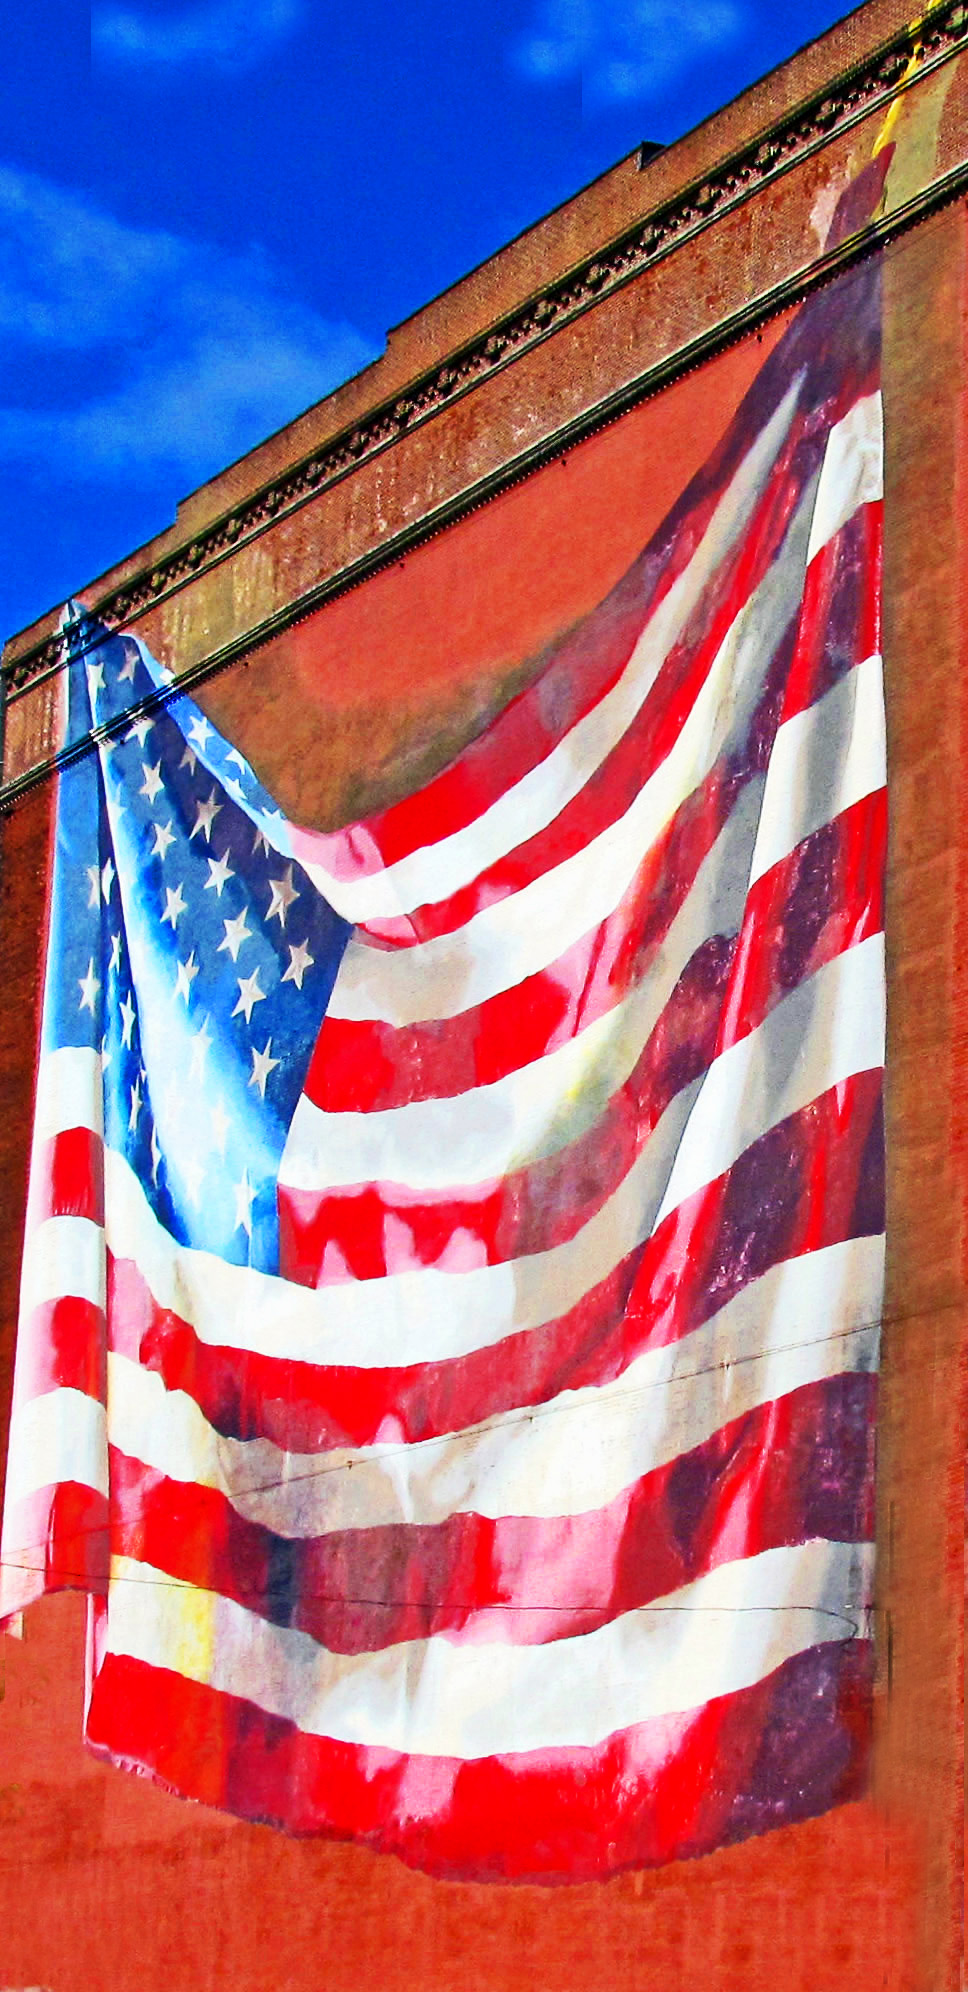 Best Adobe Stock Images Huge American Flag Mural In Philadelphia Love 39;s Photo Album